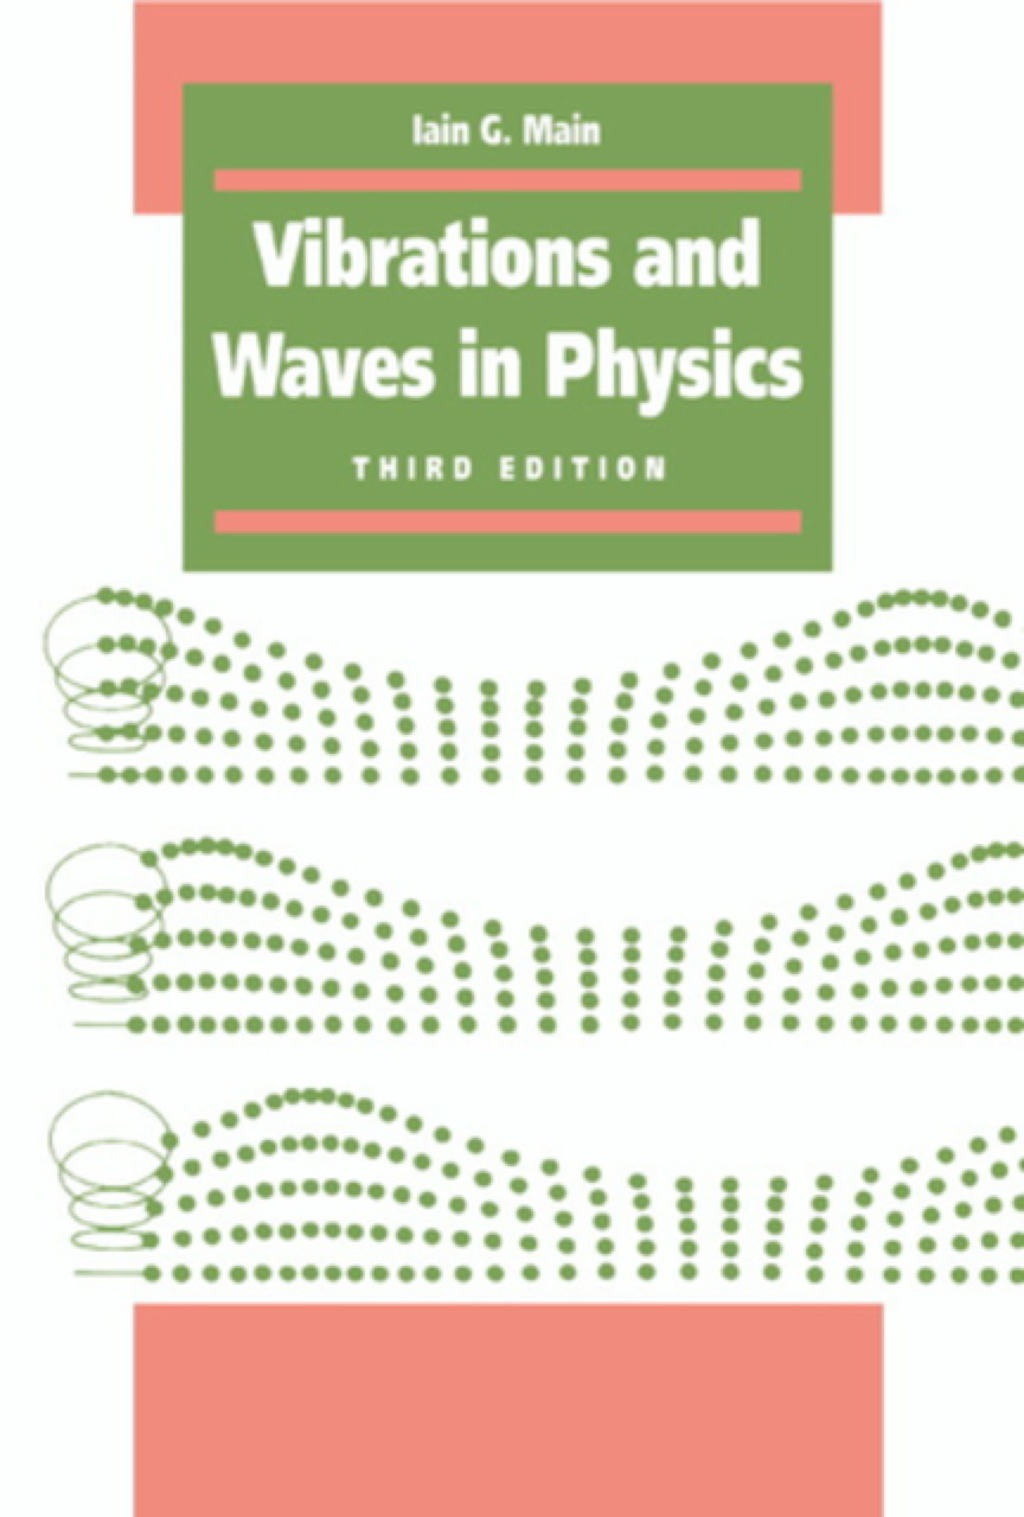 Vibrations and Waves in Physics (ebook) eBooks